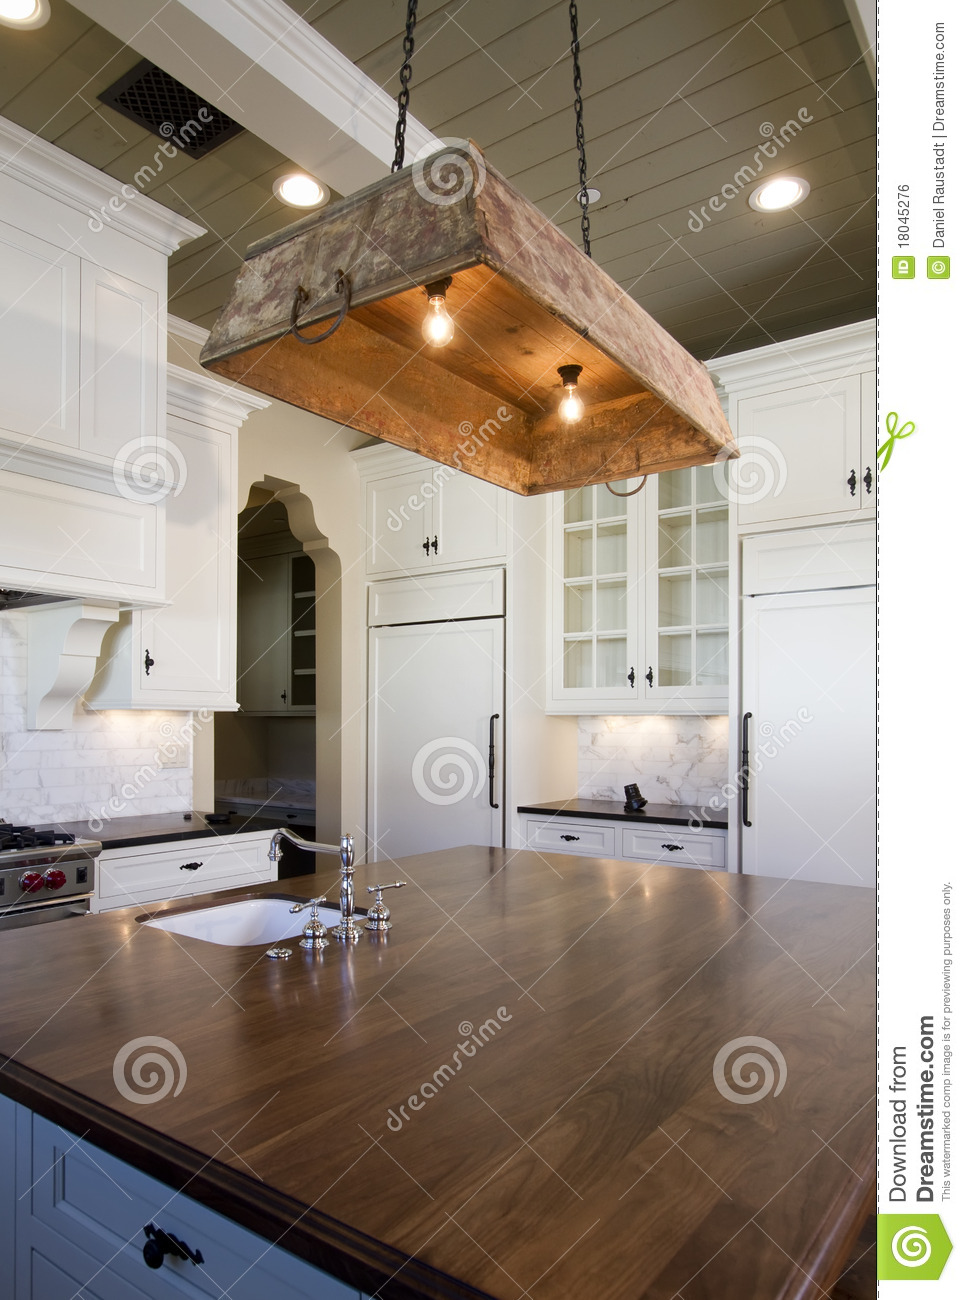 Cottage Style Home White Kitchen Stock Photo - Image of ...